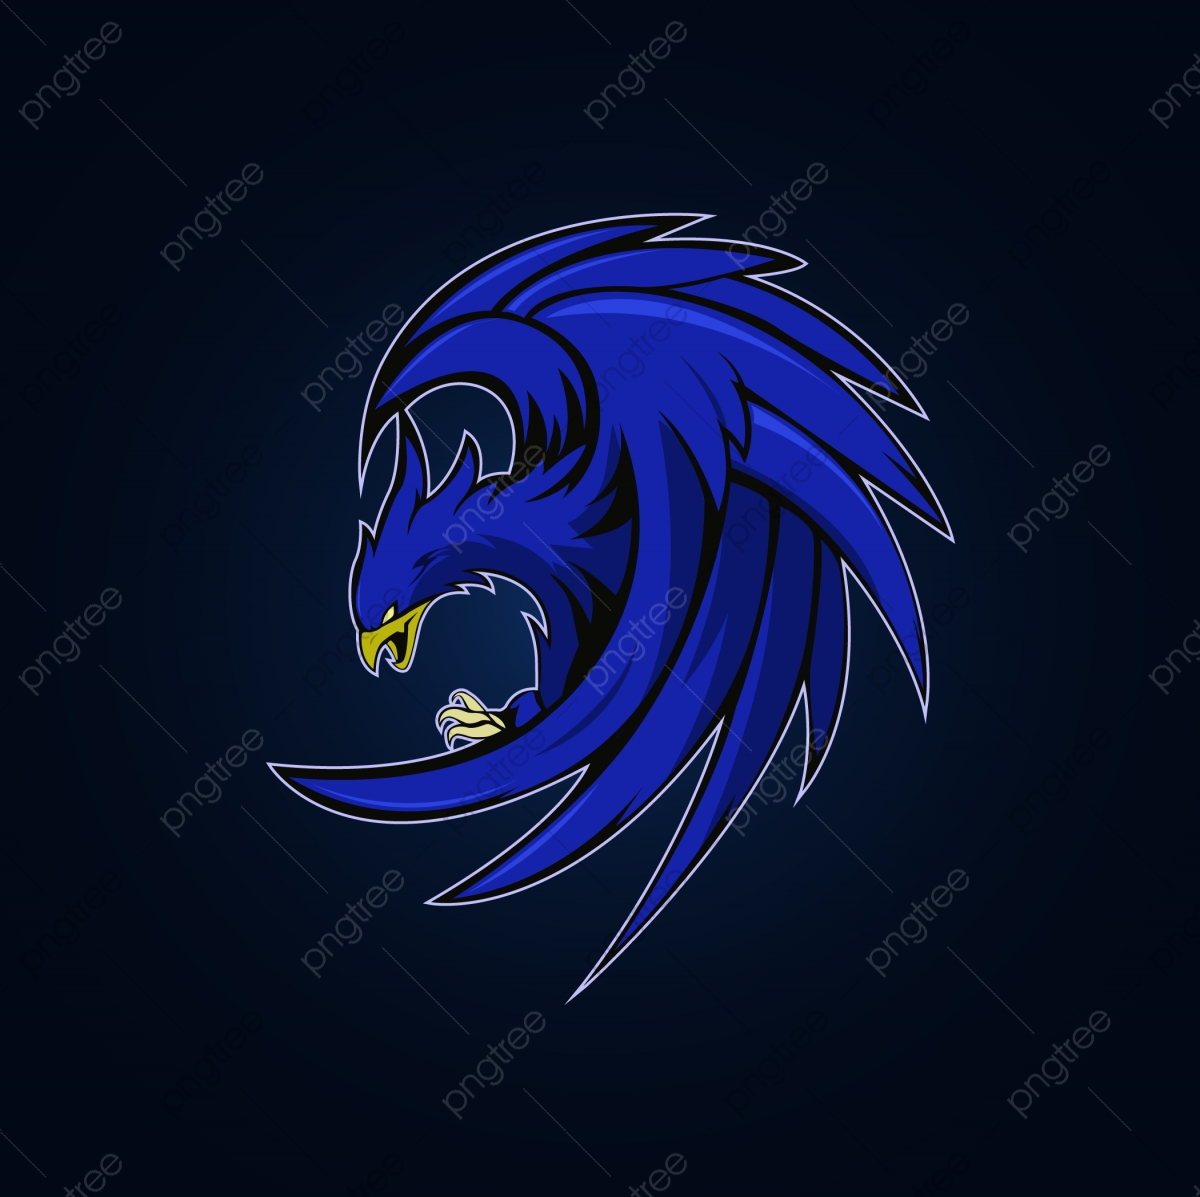 Phoenix Vector Png Images Phoenix Logo Phoenix Bird Dragon Phoenix Vectors In Ai Eps Format Free Download On Pngtree